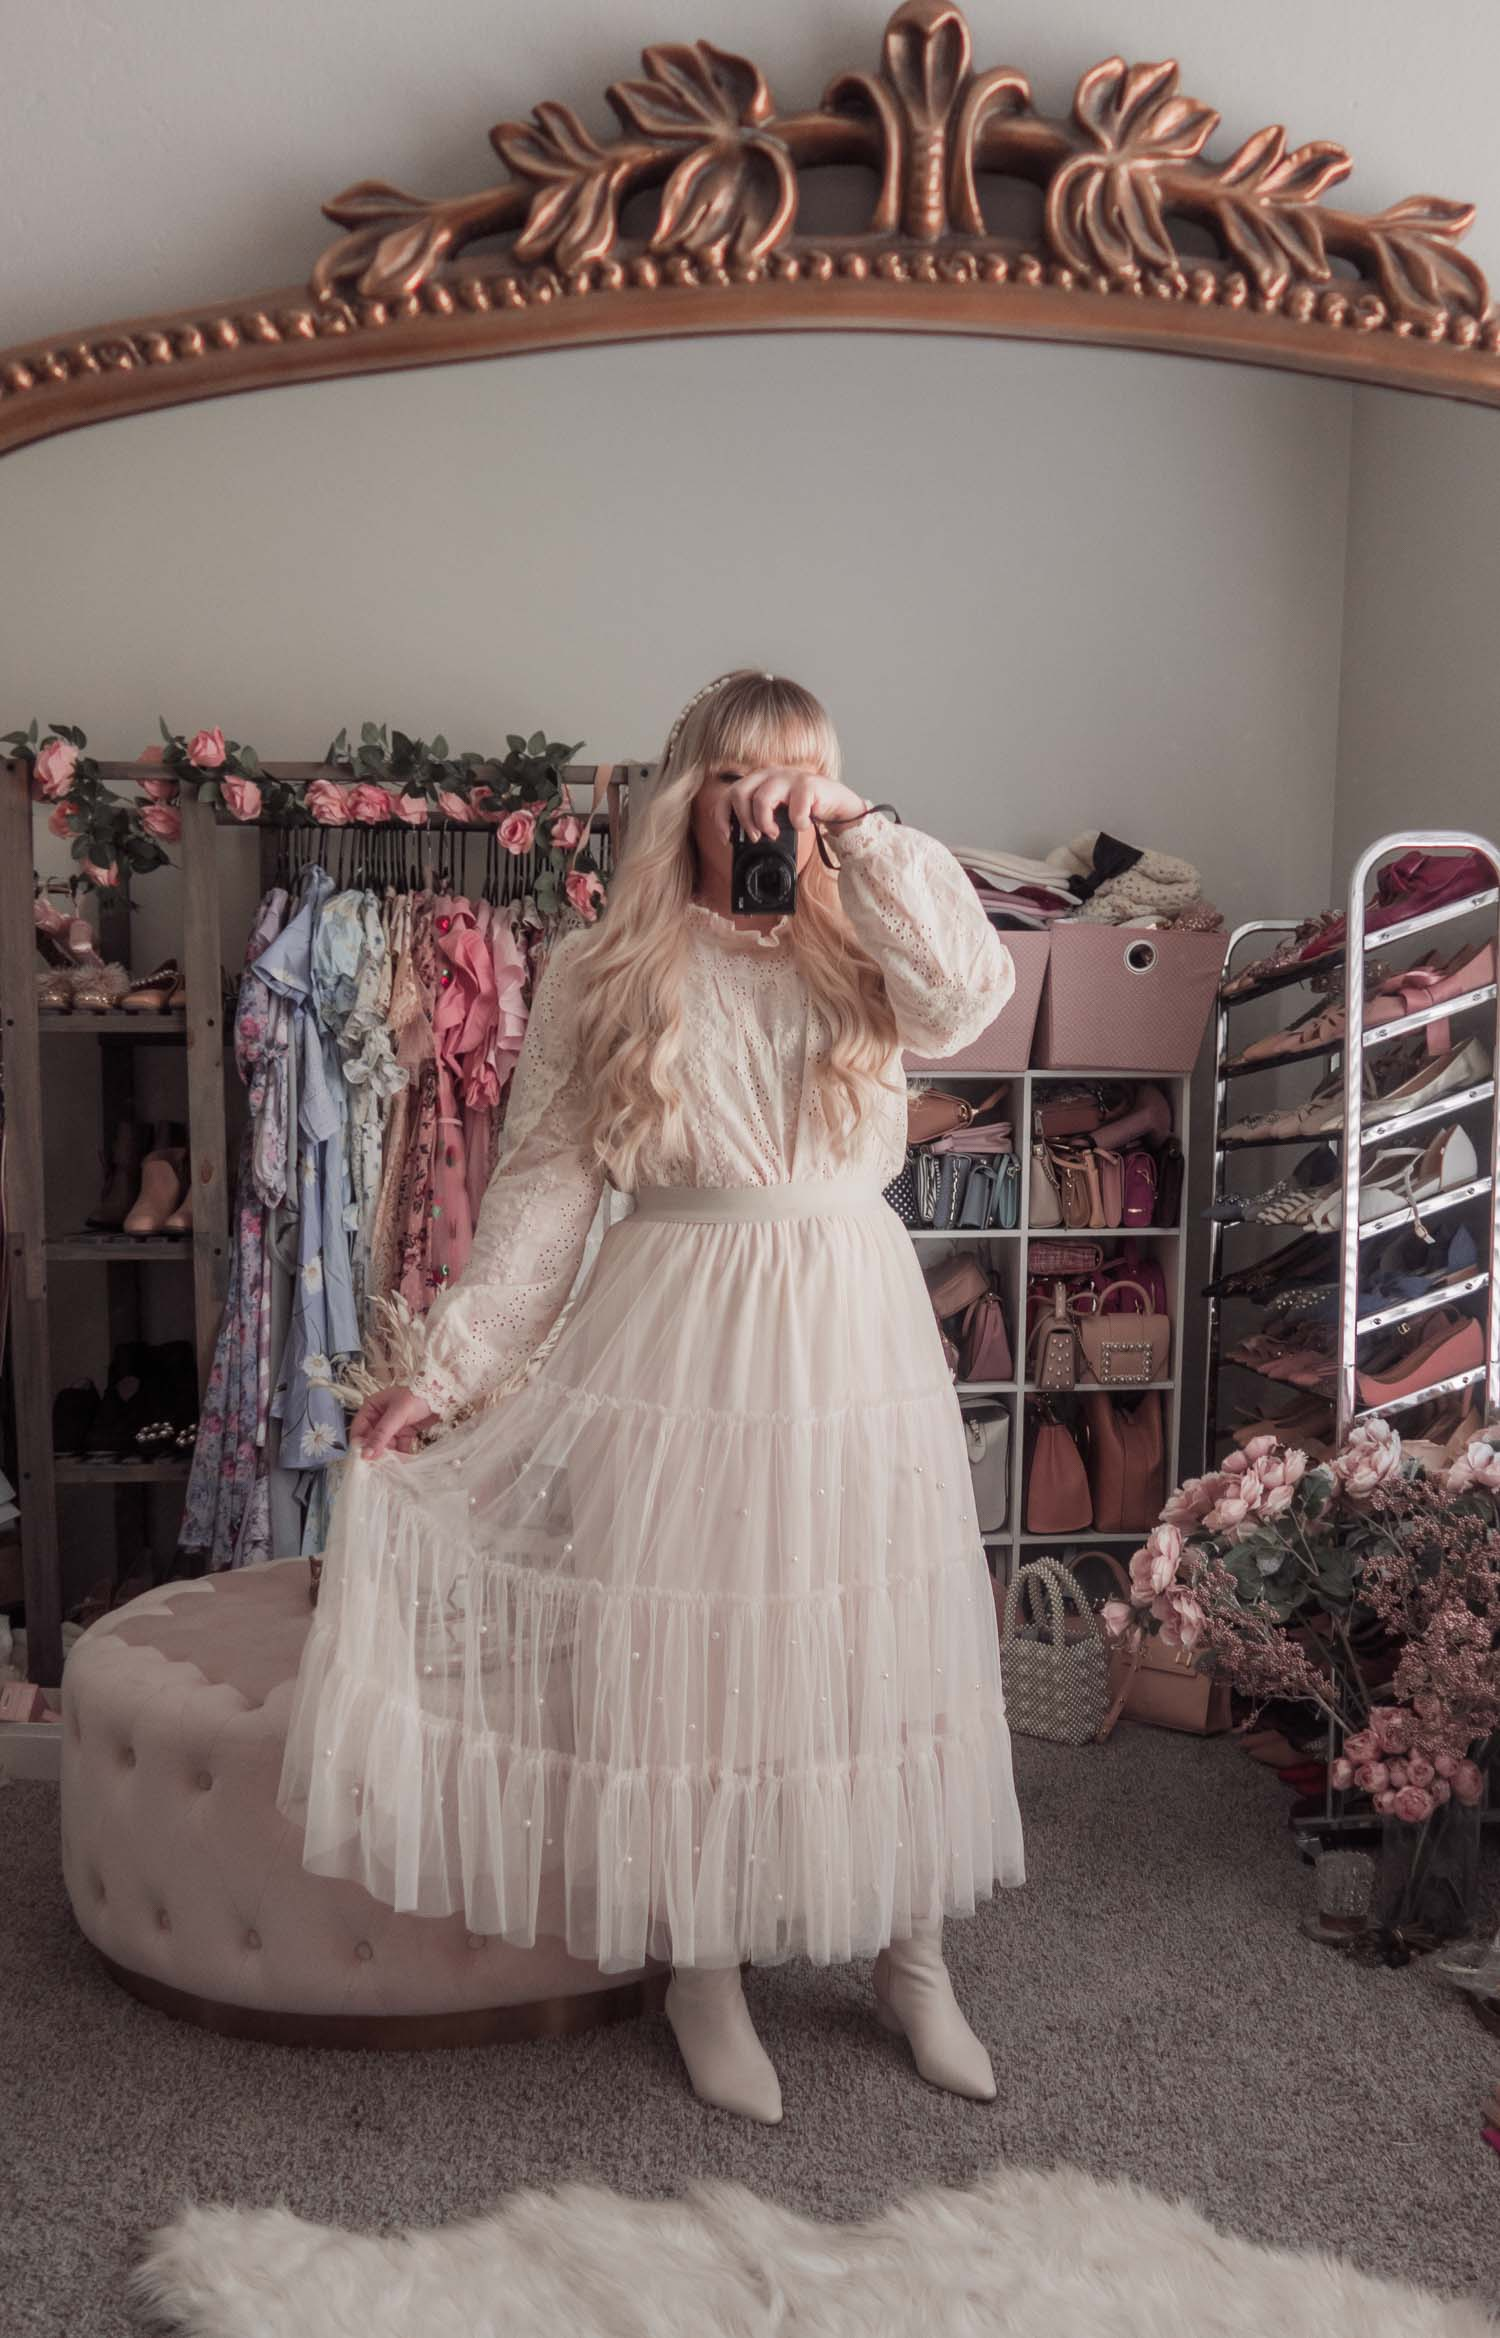 Feminine Fashion Blogger Elizabeth Hugen of Lizzie in Lace shares an updated Chicwish review and styles 4 spring outfit ideas including a cream lace top and Chicwish tulle skirt